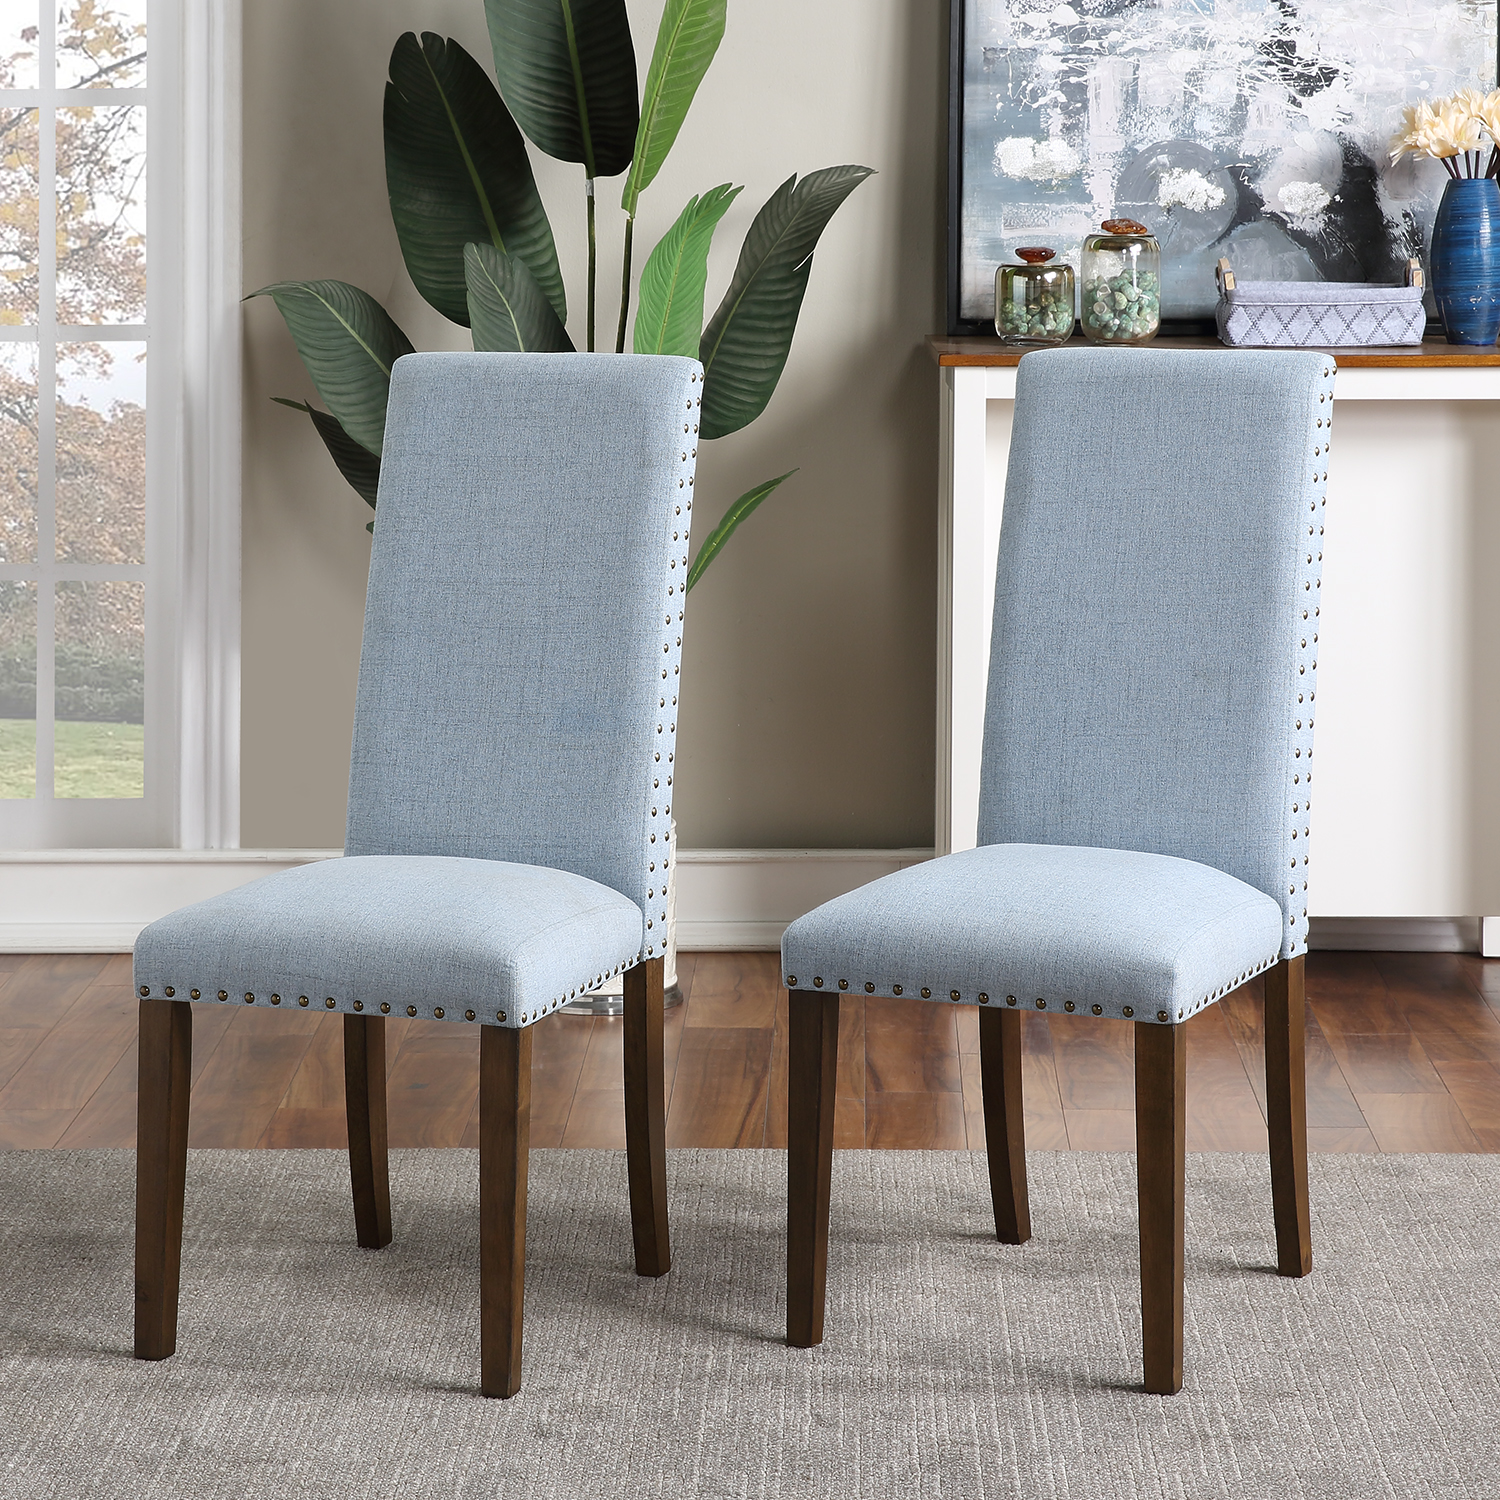 Enyopro Set Of 2 Dining Room Chairs Living Room Side Chairs Upholstered Accent Chairs With Solid Wood Legs Contemporary Dining Chairs With Armless For Hotel Restaurants Wedding Home Kitchen B2353 Walmart Com